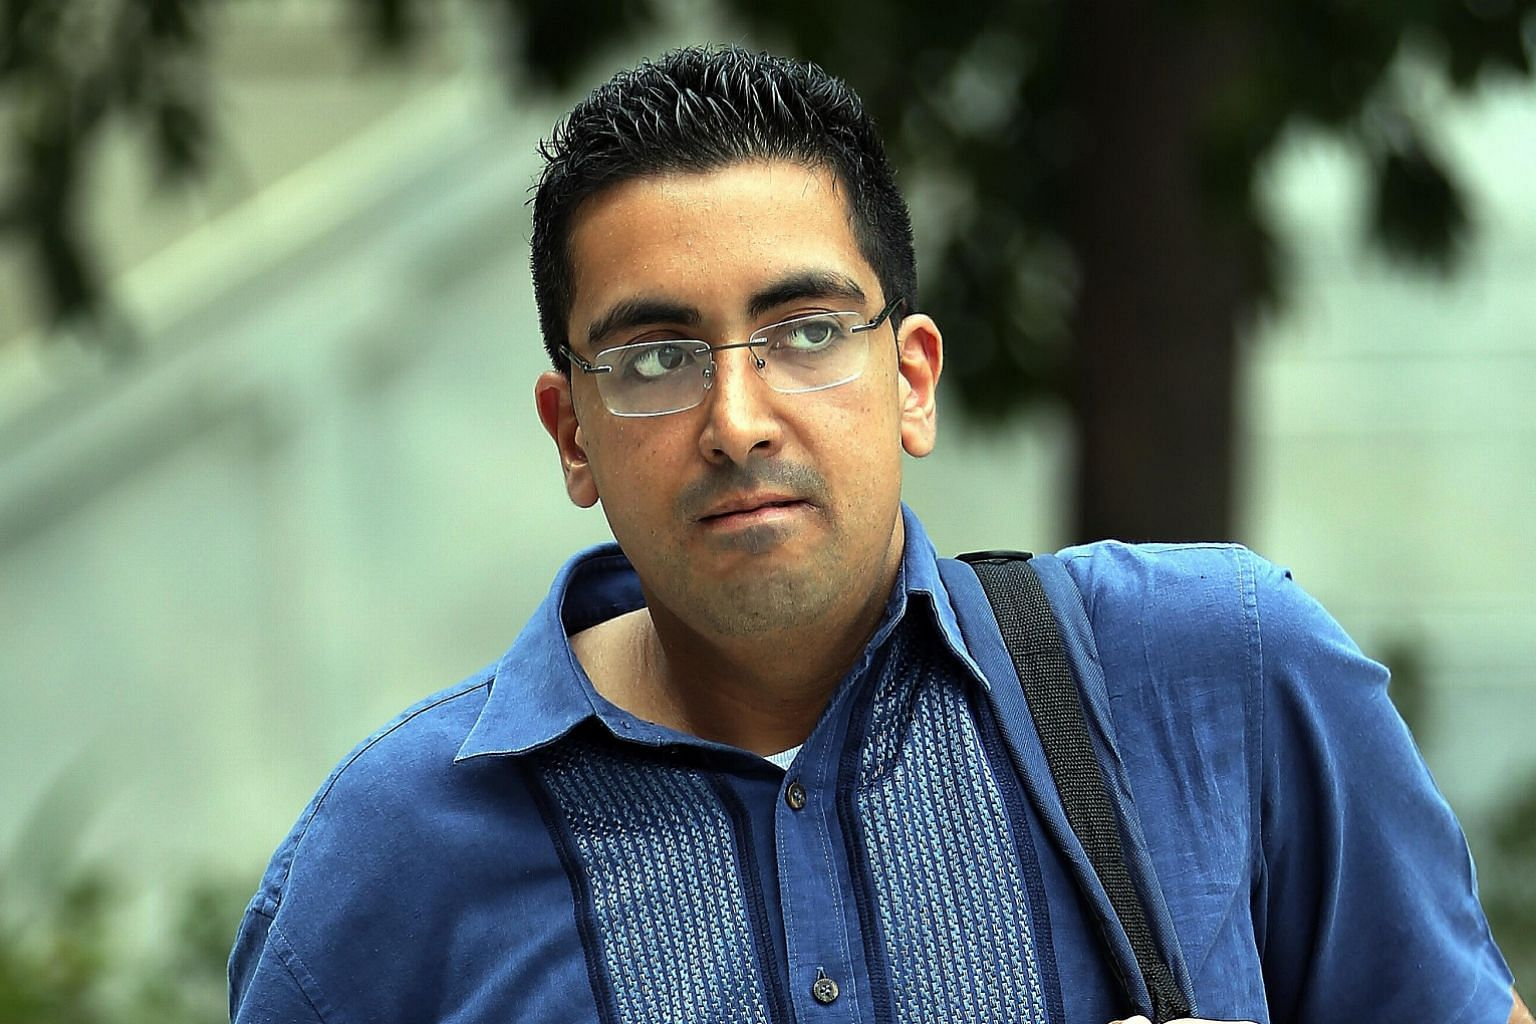 Yogvitam Pravin Dhokia went back to prison last Friday after a hearing, hoping that if he gets a jail sentence, it will be backdated.